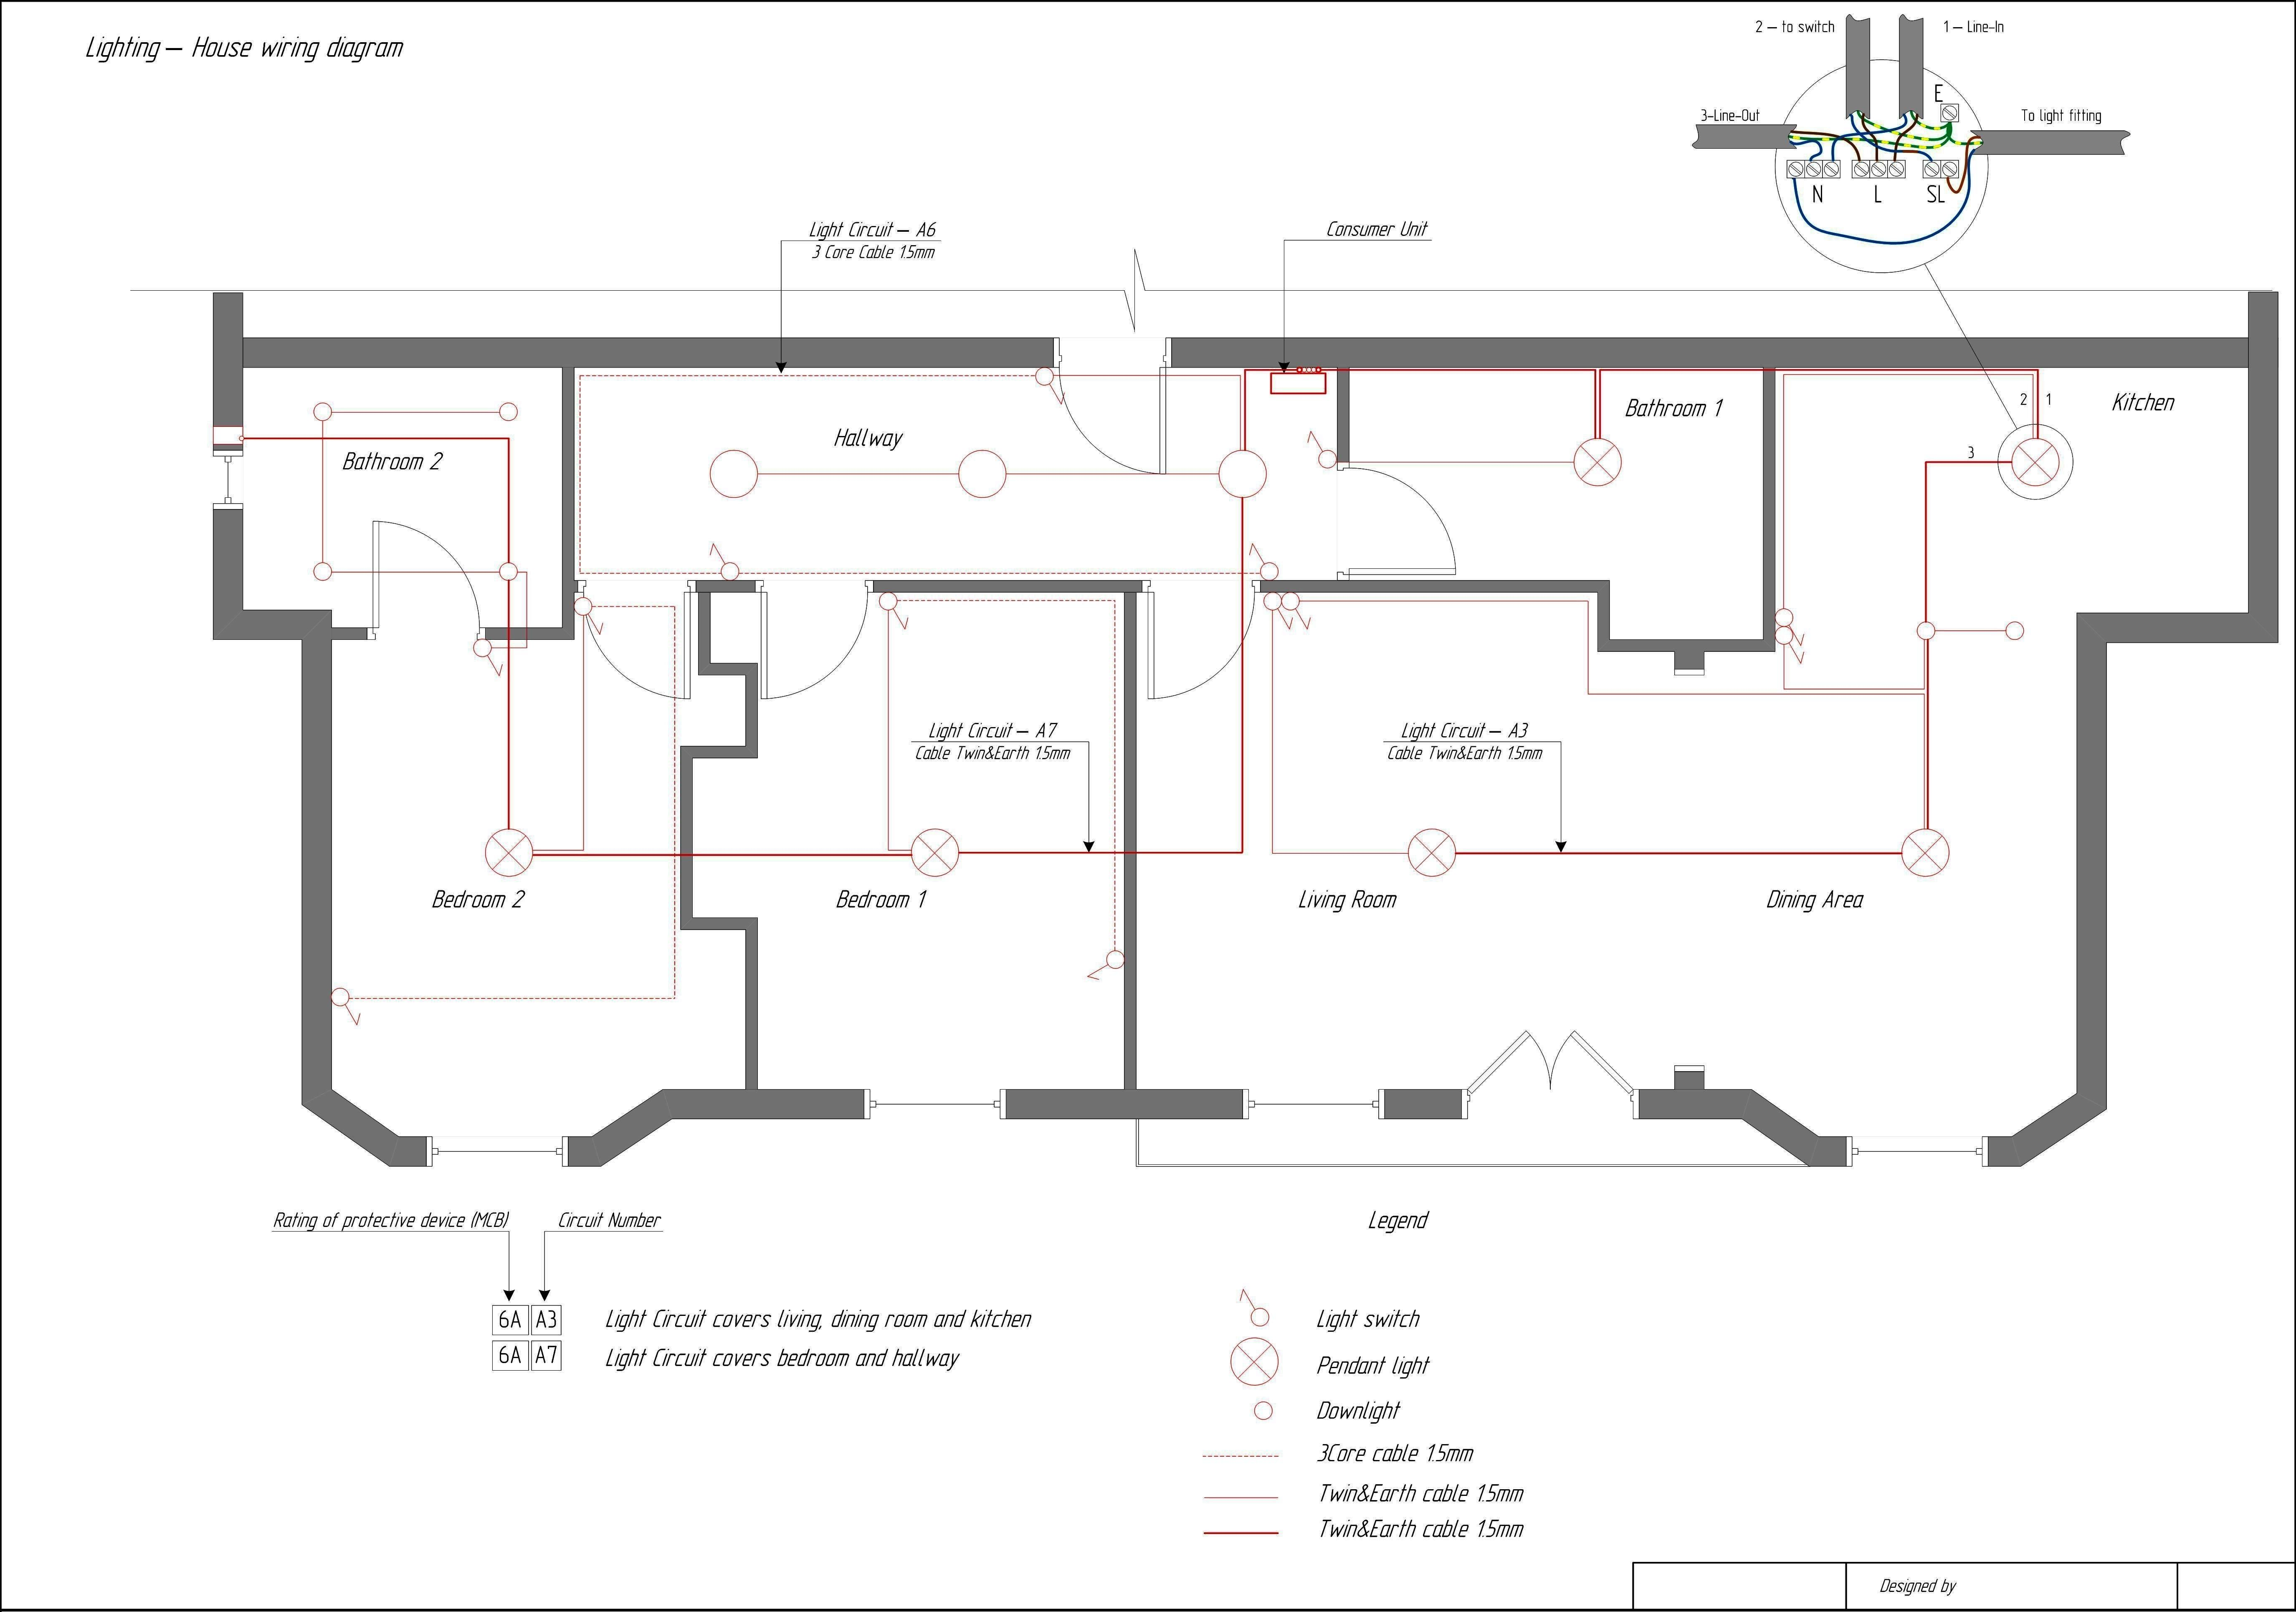 17 Automatic House Plumbing Diagram Http Bookingritzcarlton Info 17 Automatic House Plumbi House Wiring Electrical Circuit Diagram Electrical Wiring Diagram